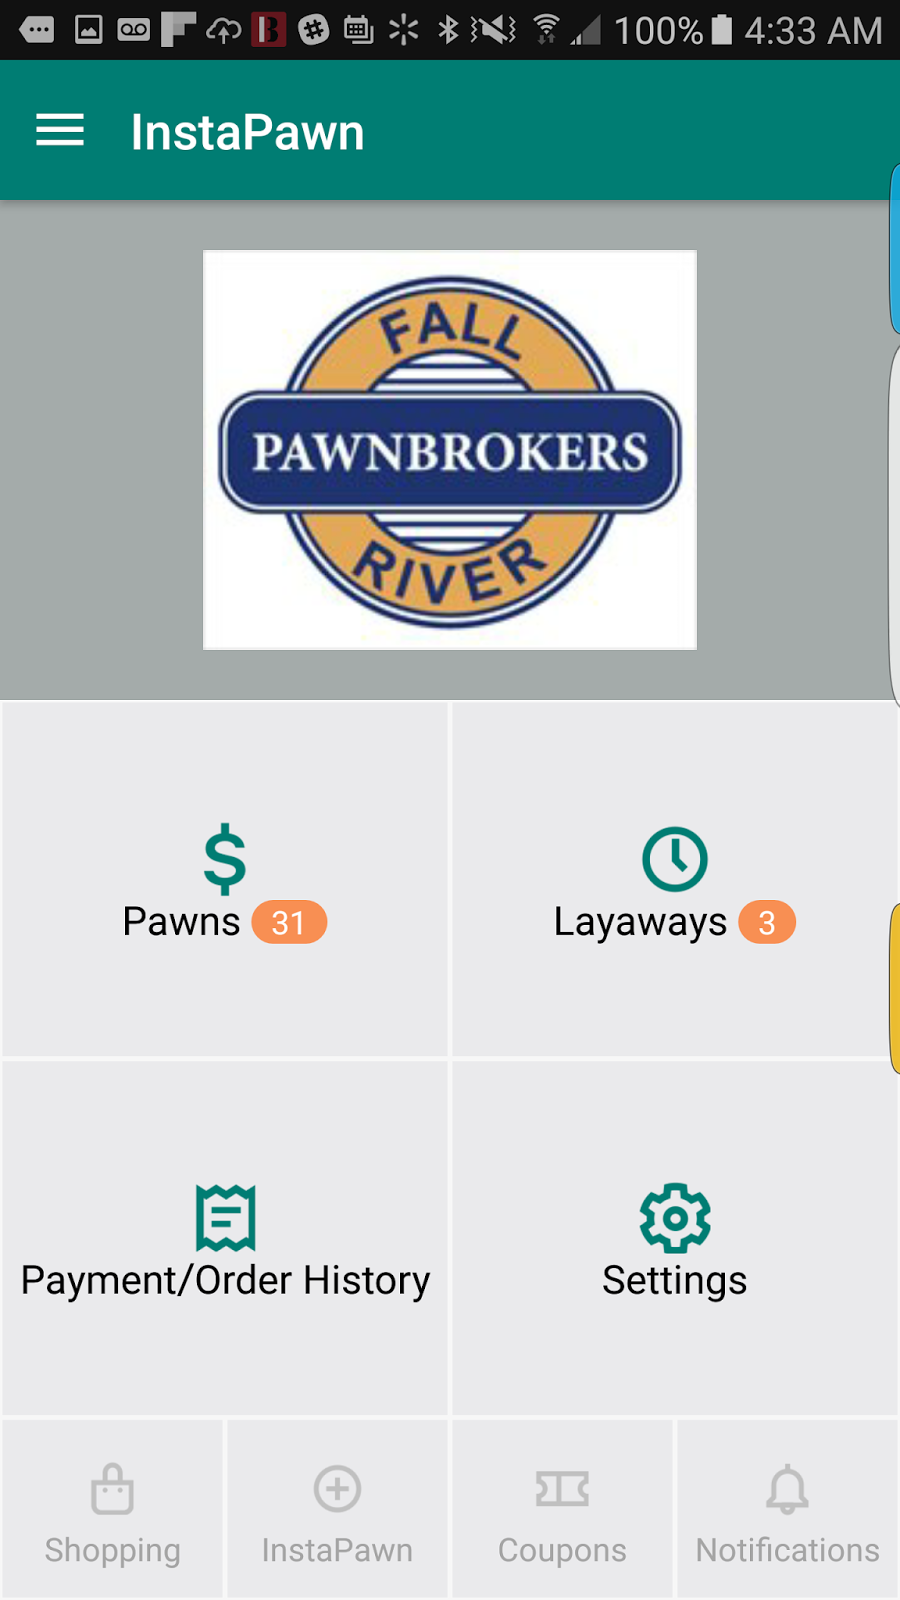 Pawnbroker's Bible - ultimate guide to operate your store